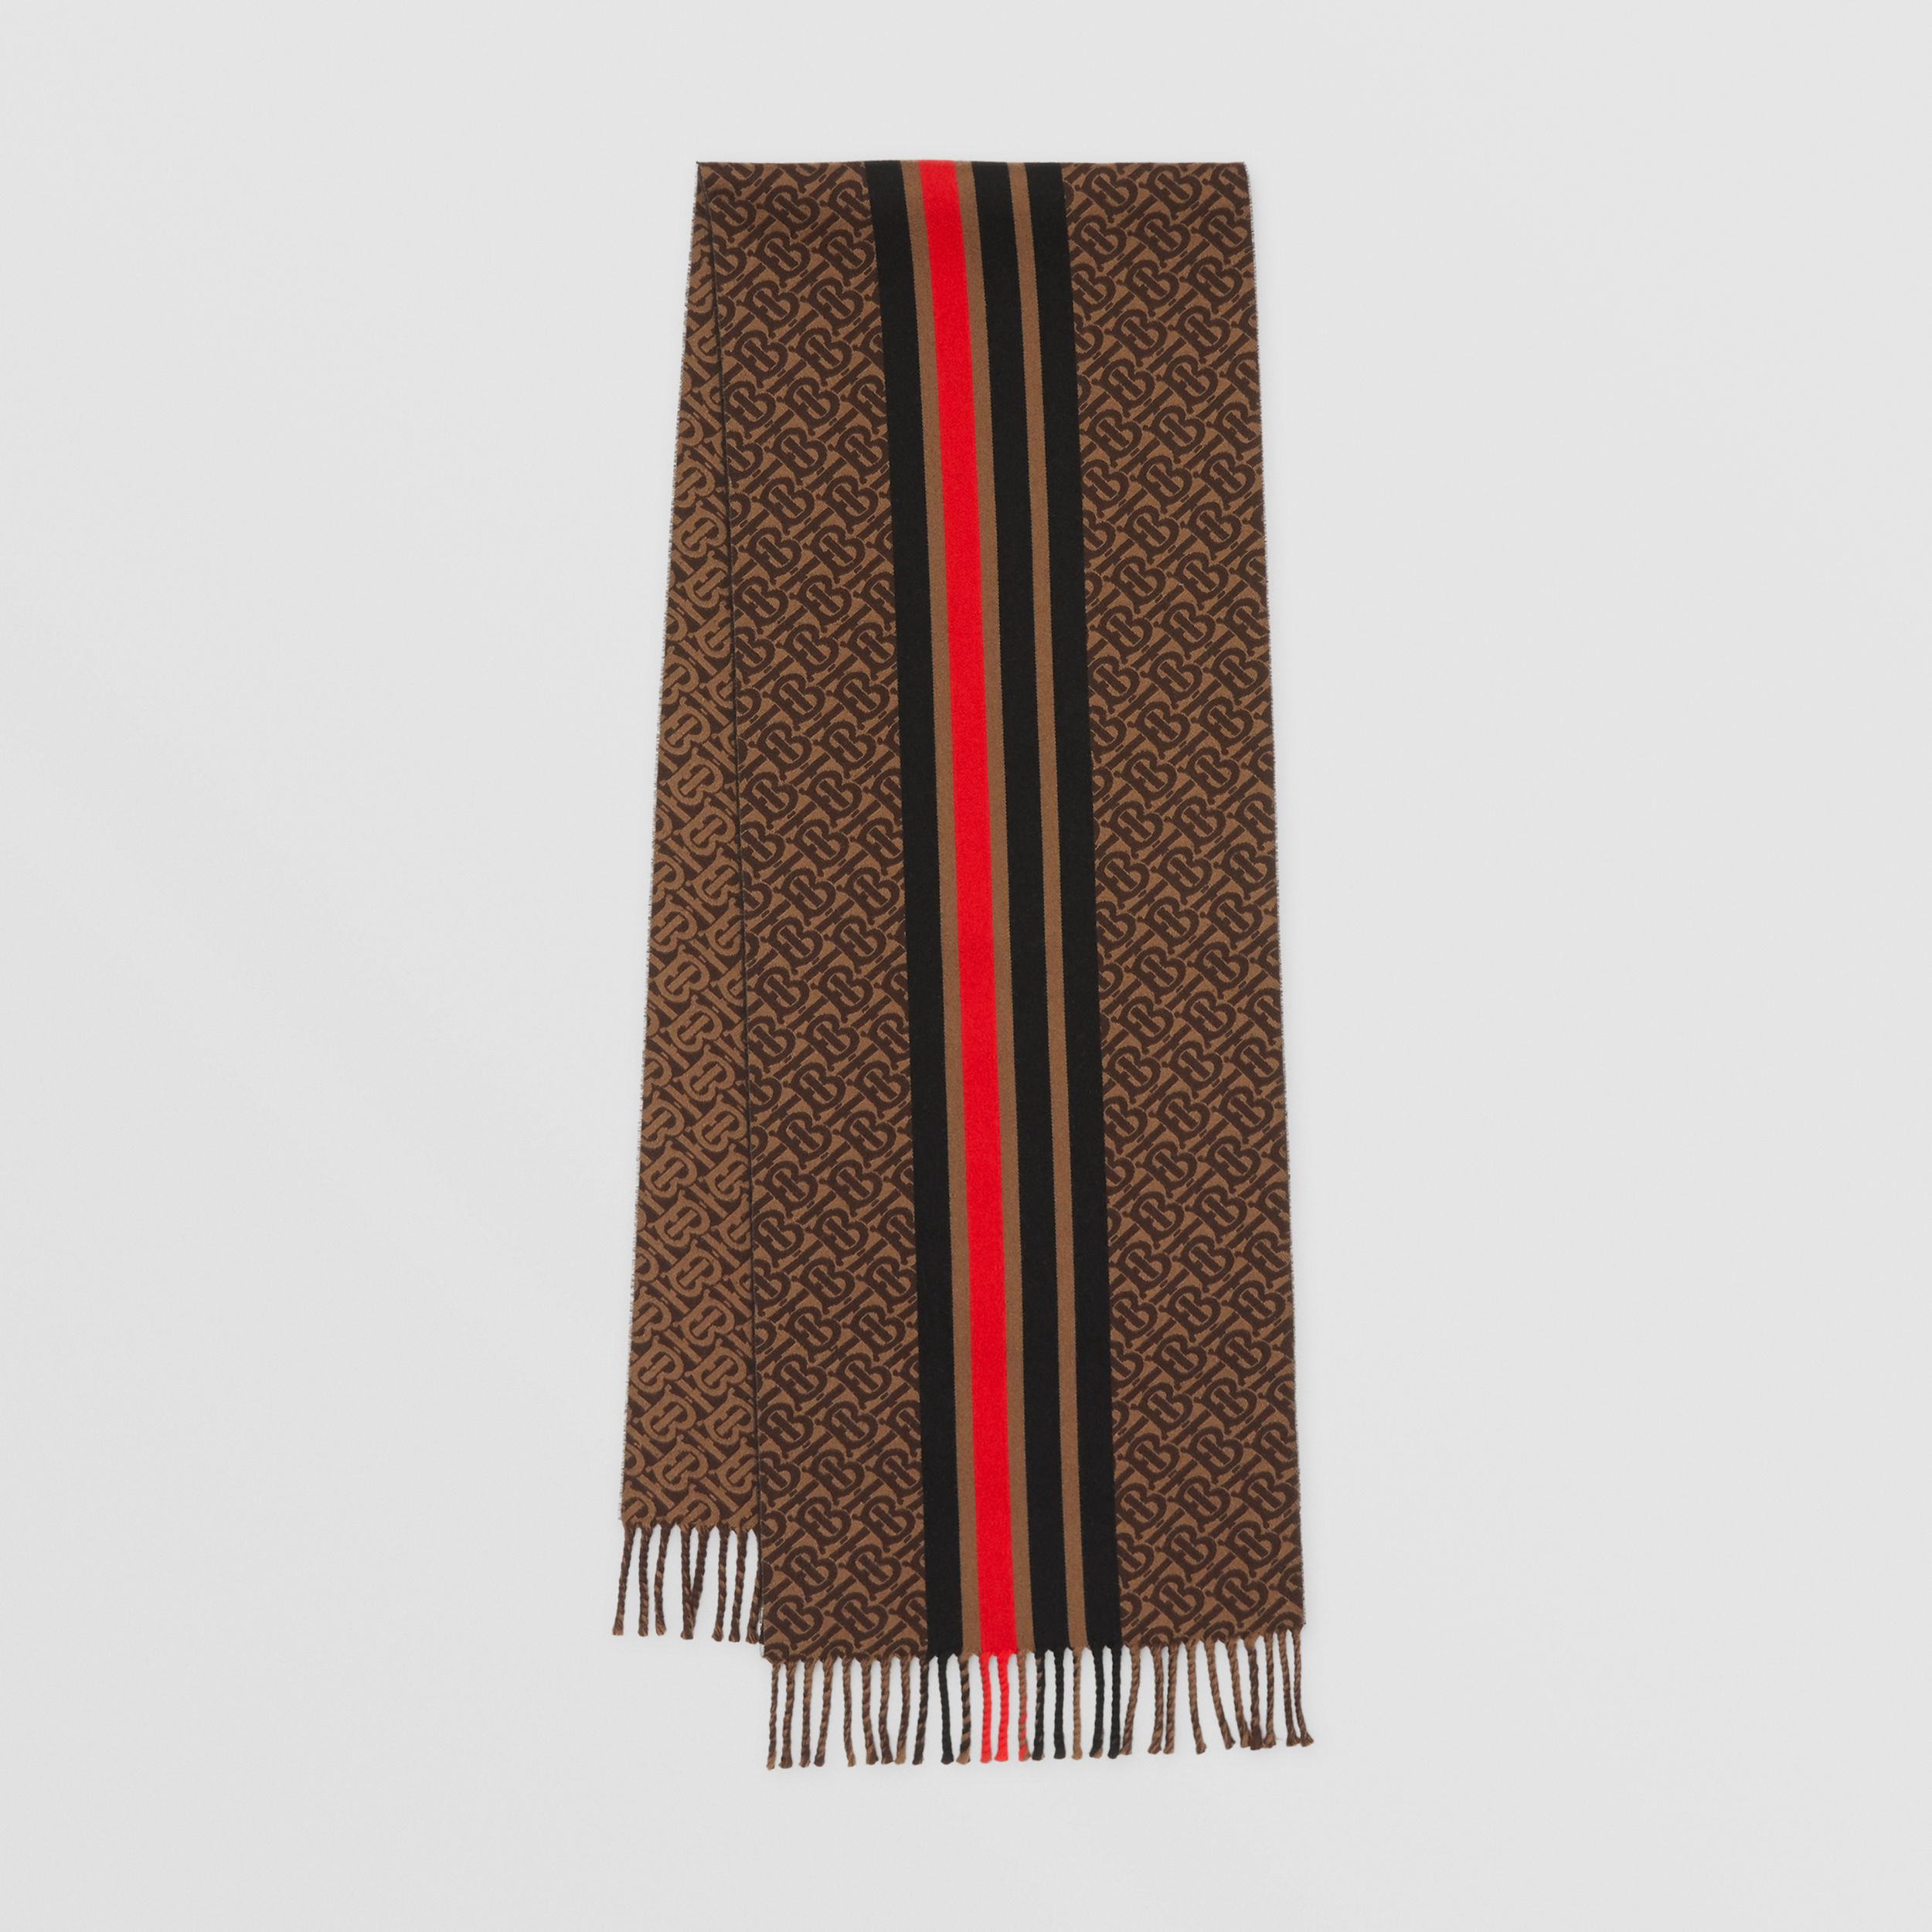 Striped Monogram Wool Cotton Jacquard Scarf in Bridle Brown | Burberry Canada - 1